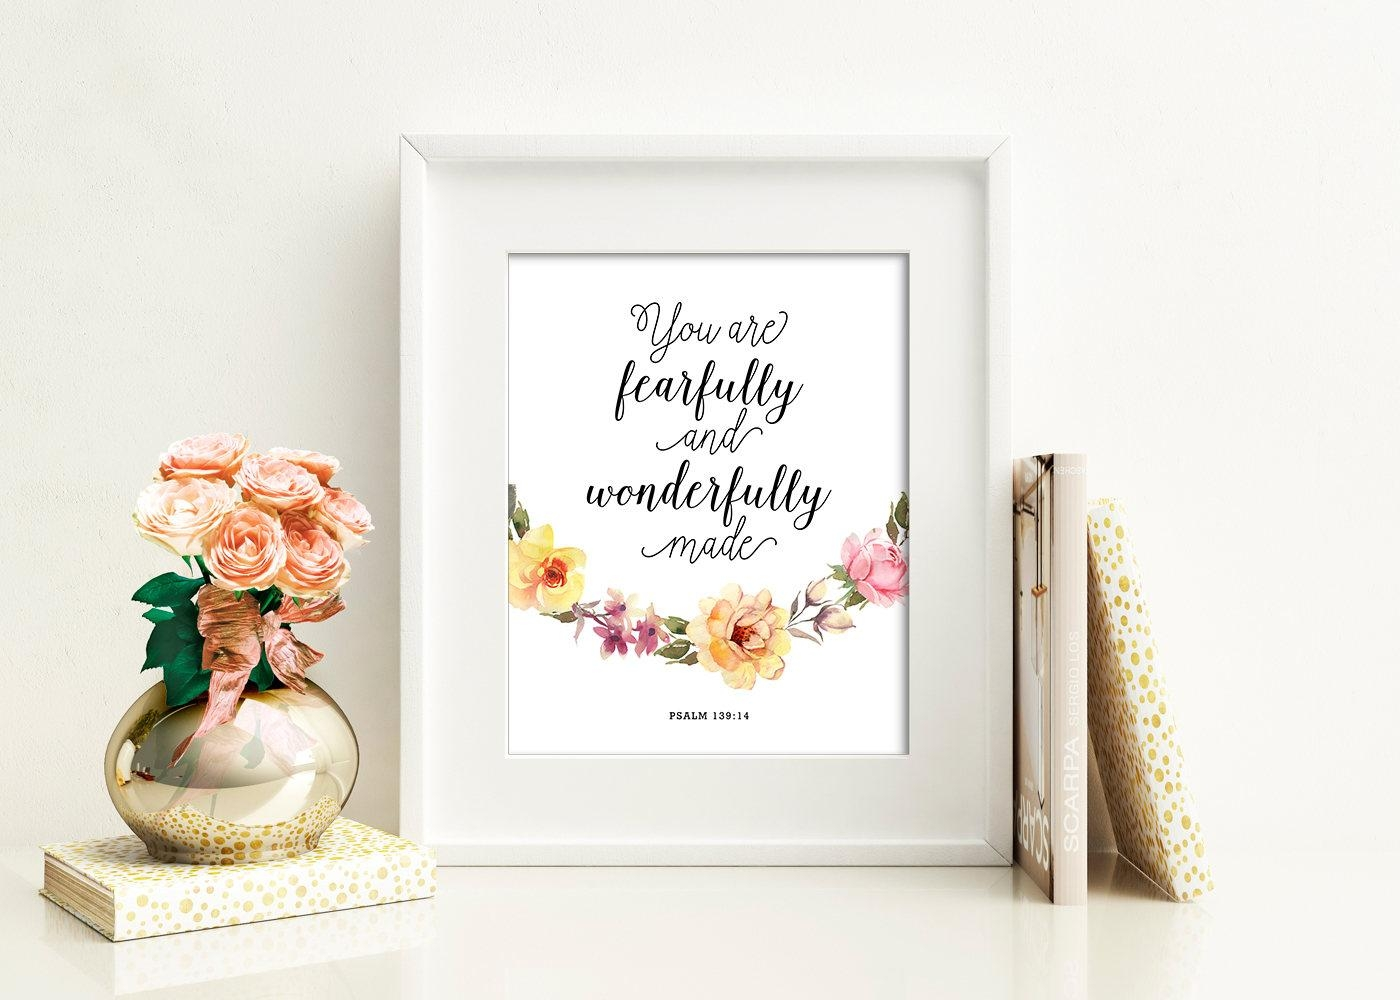 You Are Fearfully And Wonderfully Made Nursery Decor Printable intended for Fearfully And Wonderfully Made Wall Art